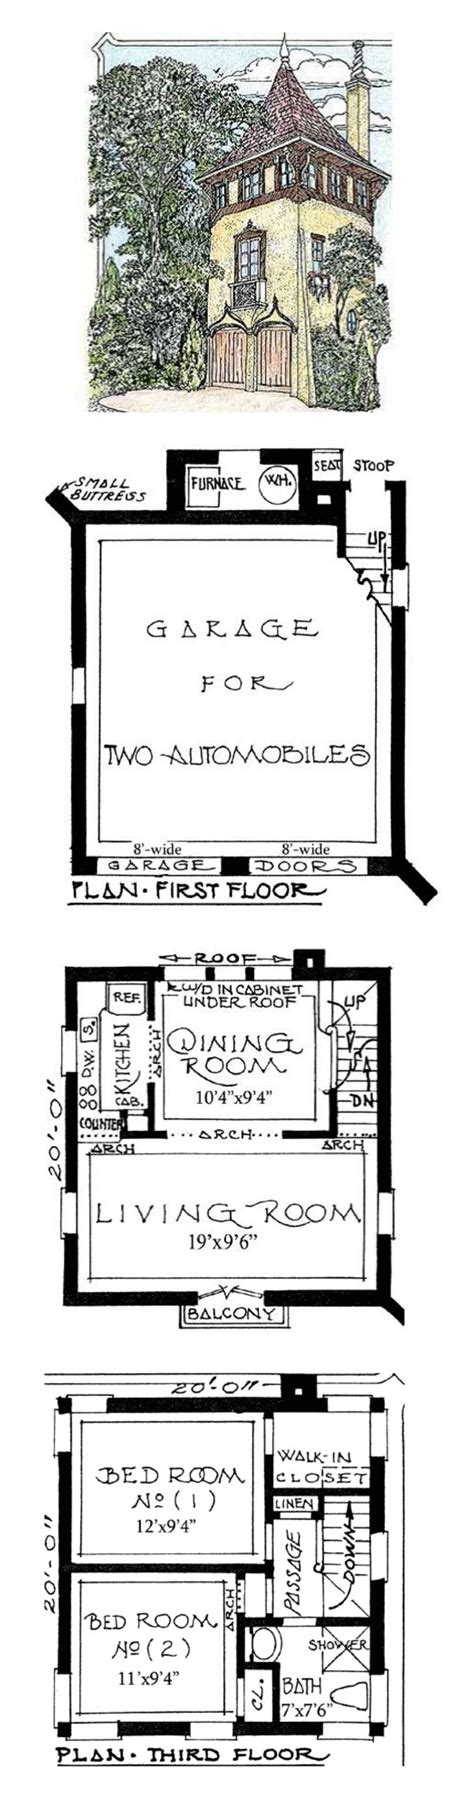 tower house plan architectural designs romantic carriage house plans